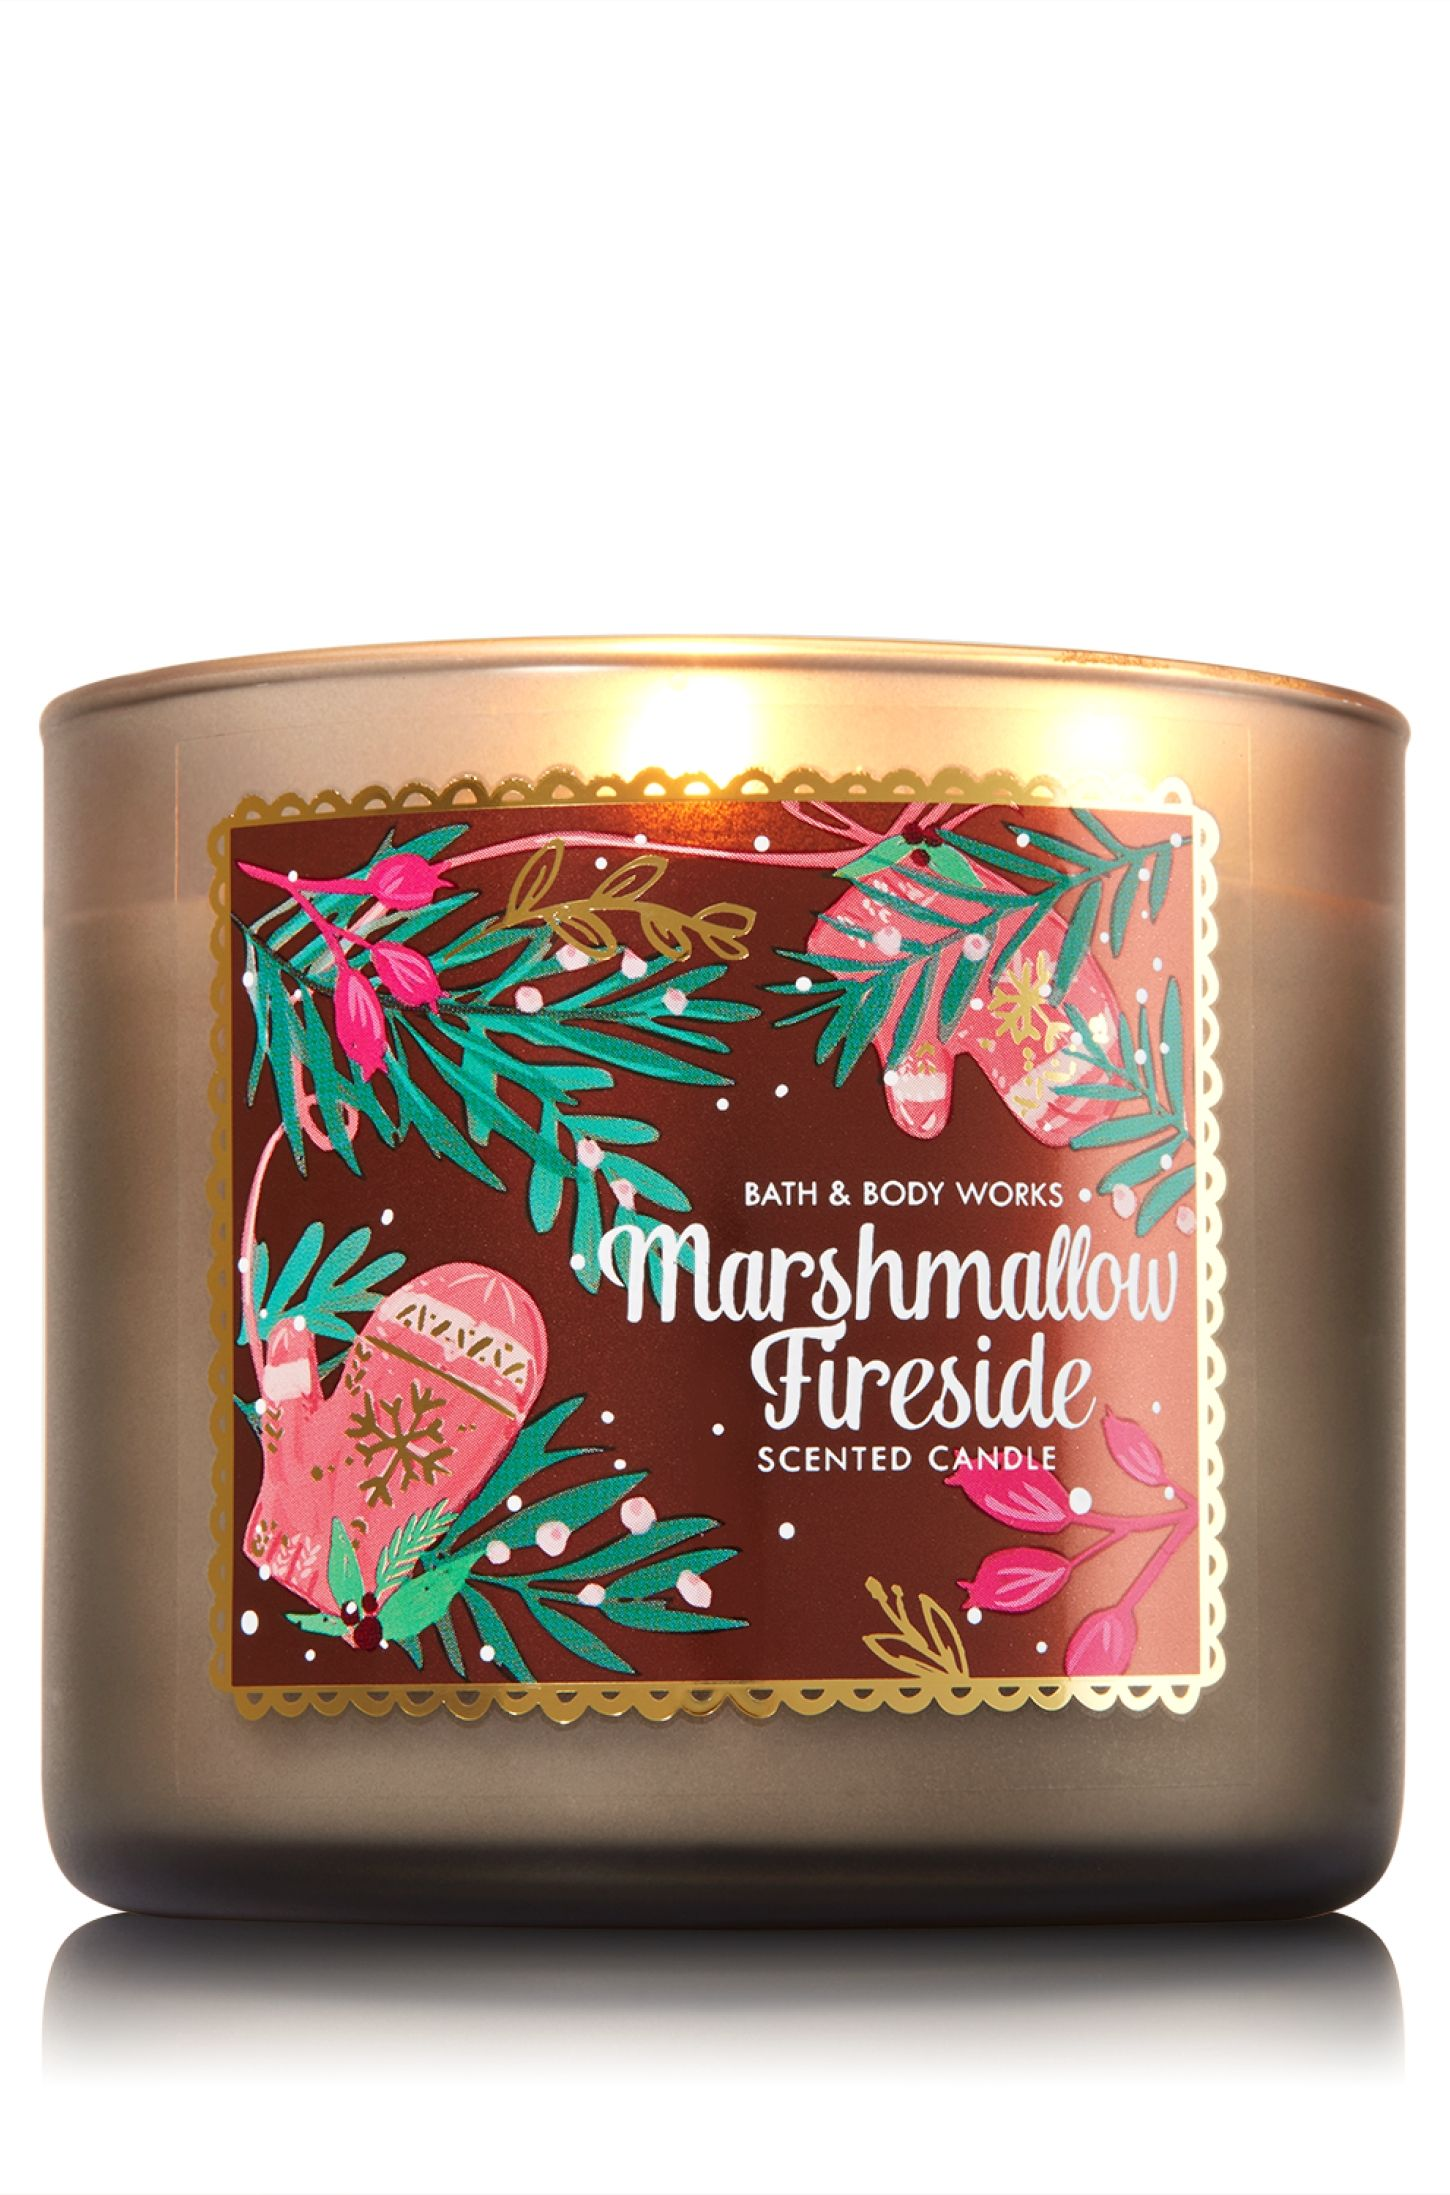 Marshmallow Fireside 3 Wick Candle Home Fragrance 1037181 Bath